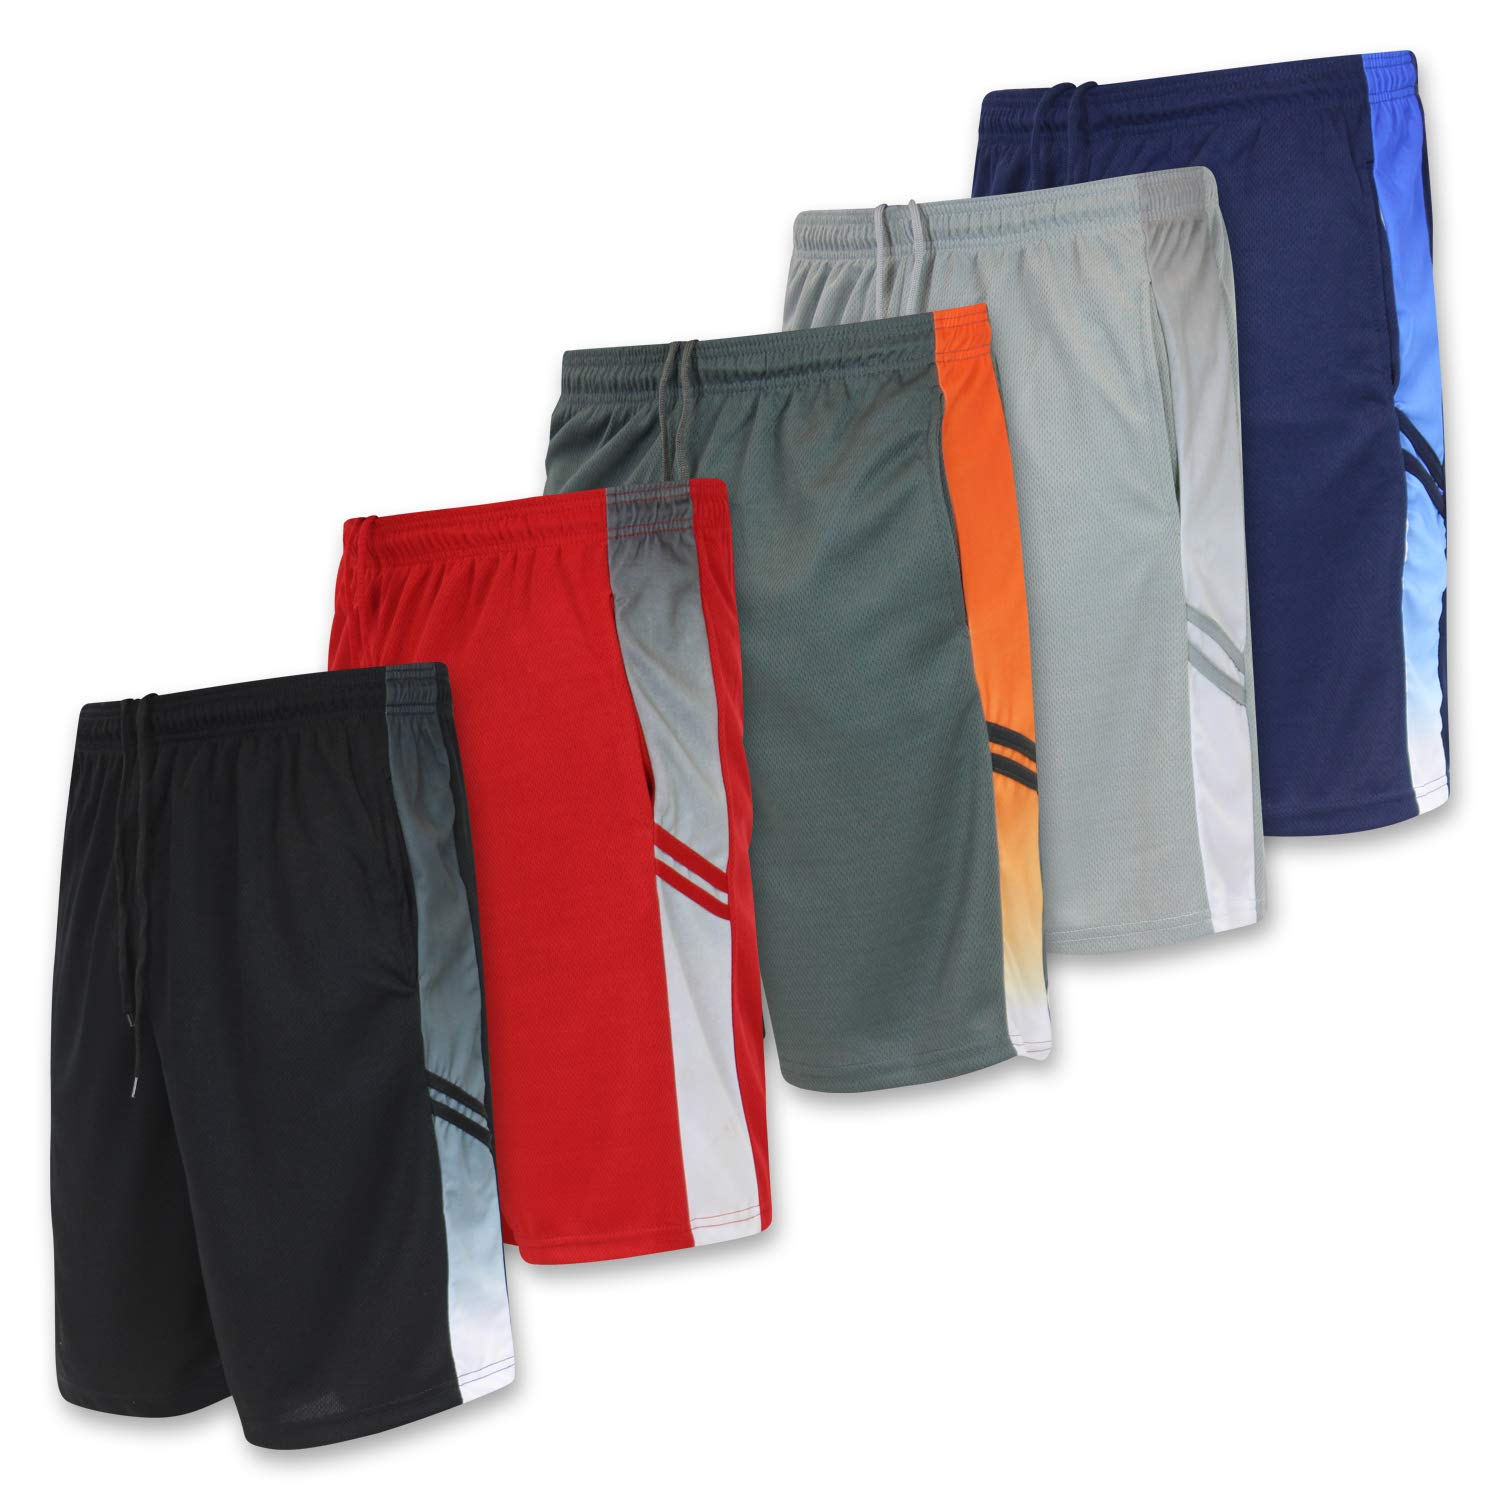 Real Essentials Men's Active Athletic Performance Shorts Pockets - 5 Pack